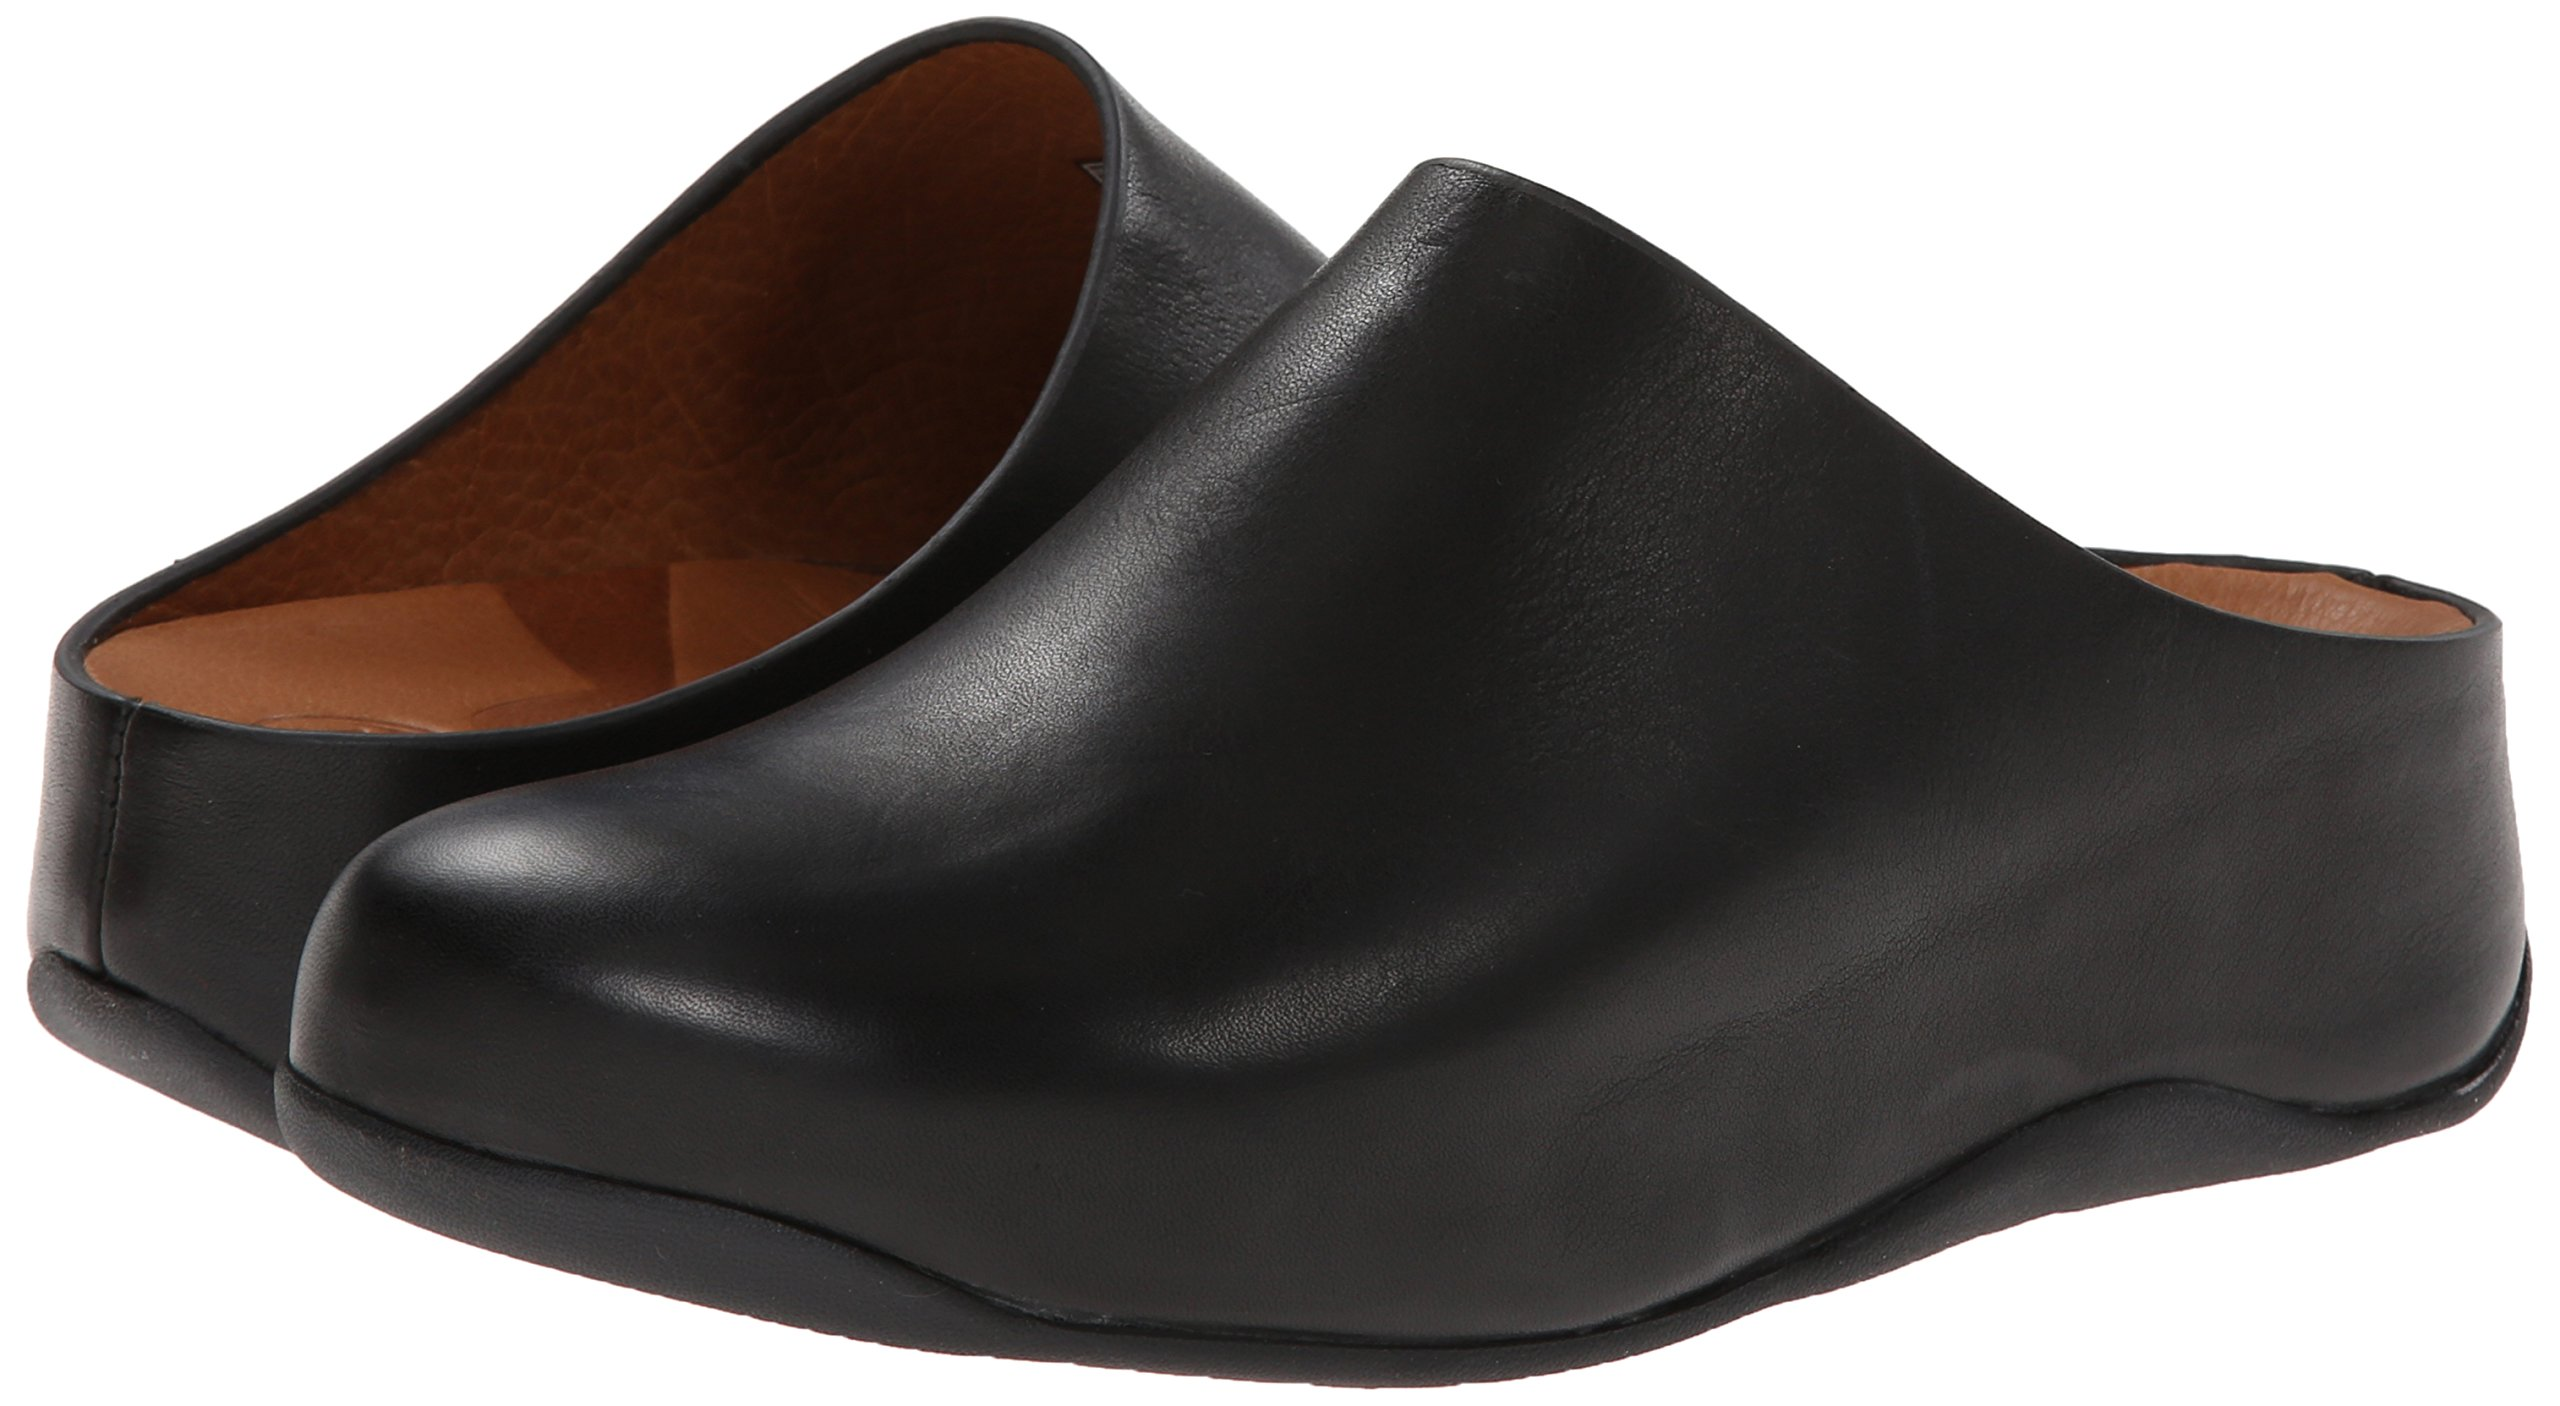 FitFlop Women's Shuv Leather Clog,Black,5 M US by FitFlop (Image #6)